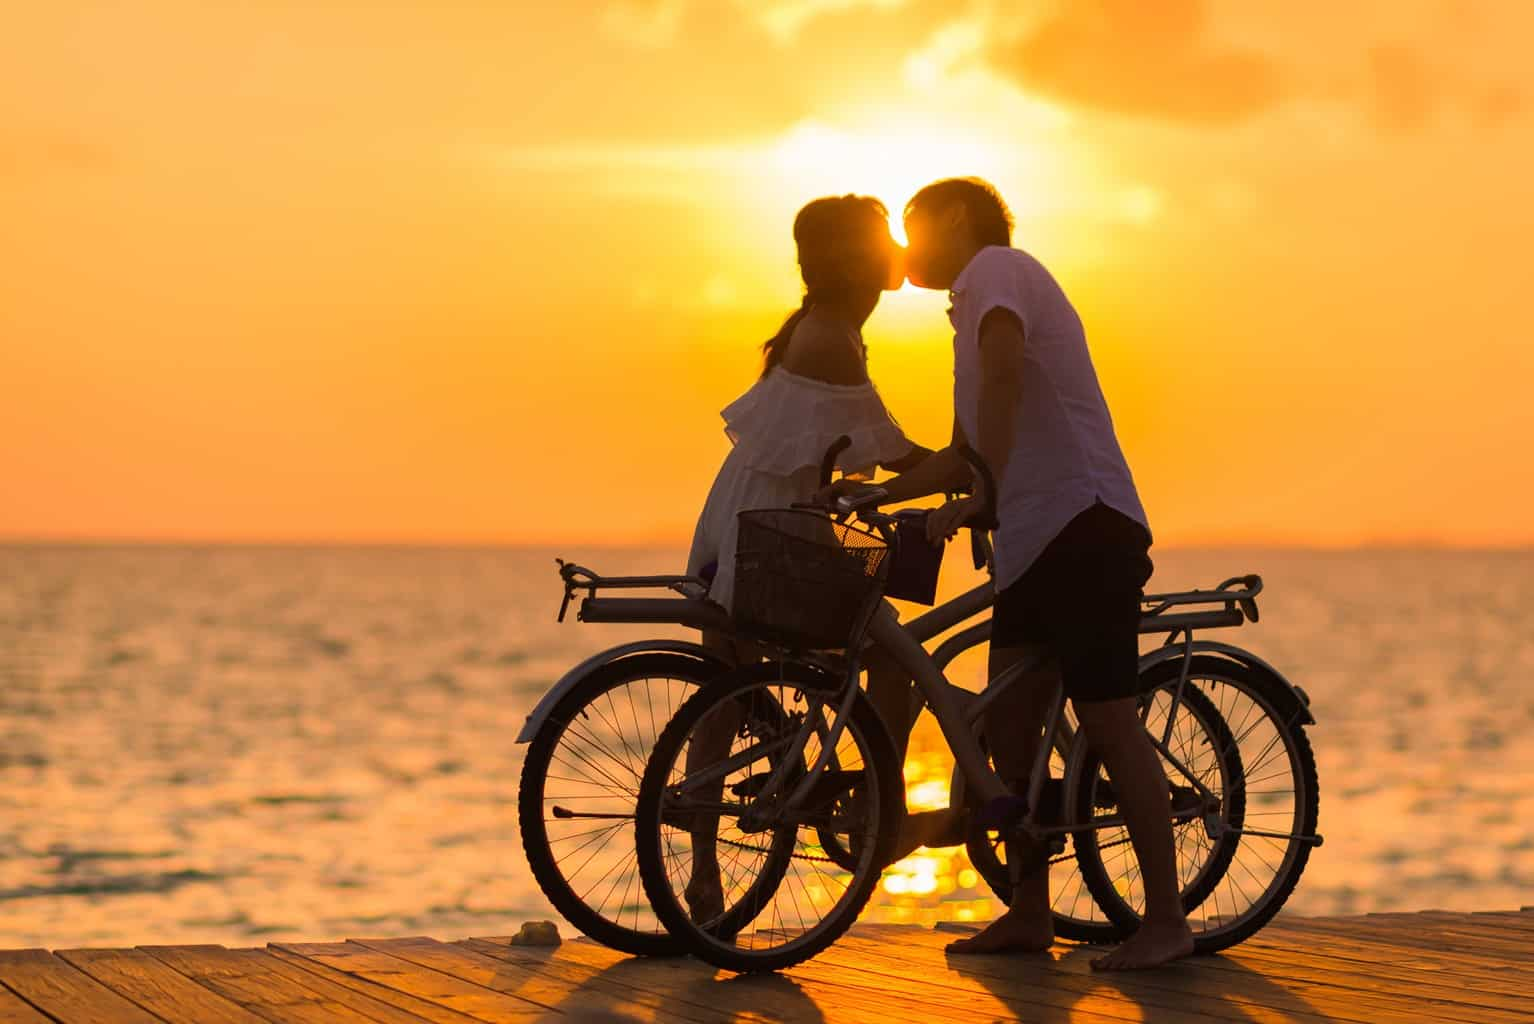 Photography of Man Wearing White T-shirt Kissing a Woman While Holding Bicycle on River Dock during Sunset